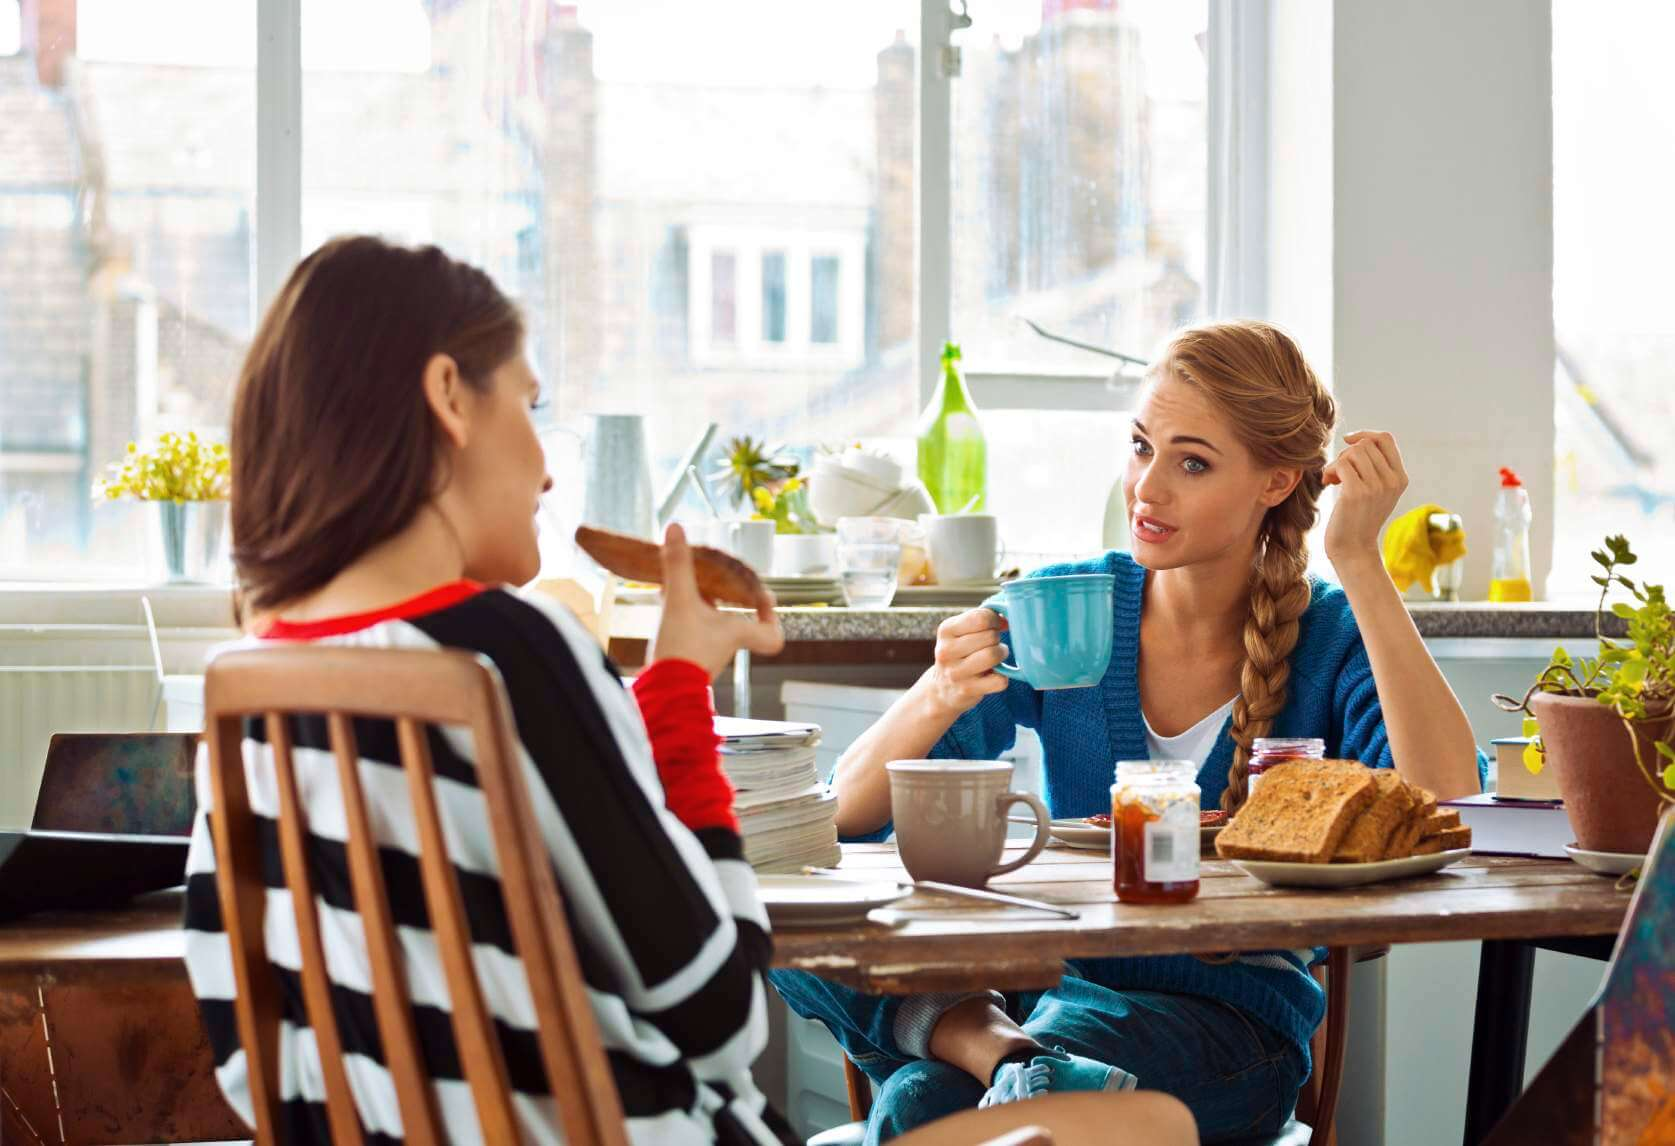 7 Signs of a Bad Roommate Relationship